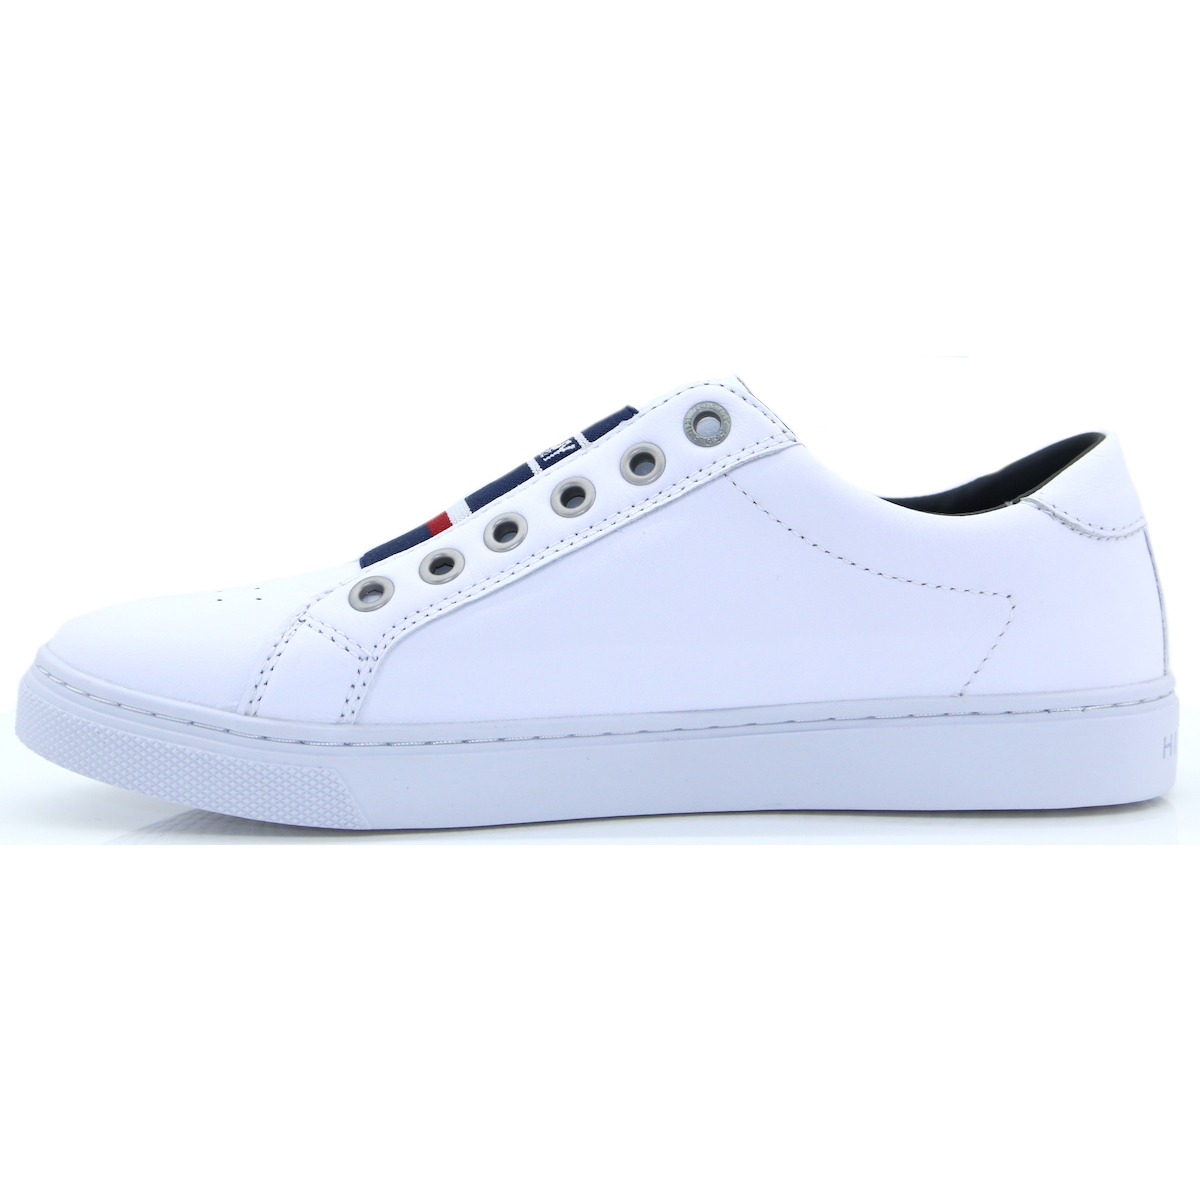 15a25424c Elastic City Sneaker - Tommy Hilfiger WHITE SLIP ON TRAINERS - Panache Shoe  Company